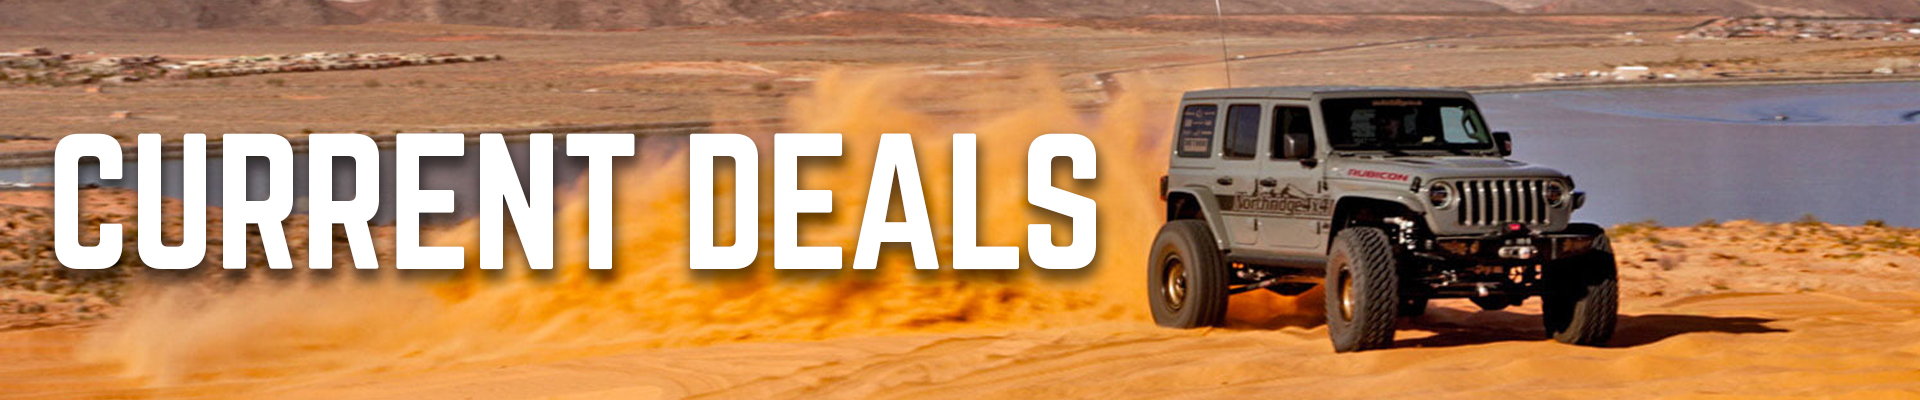 Northridge4x4 current deals and sales page